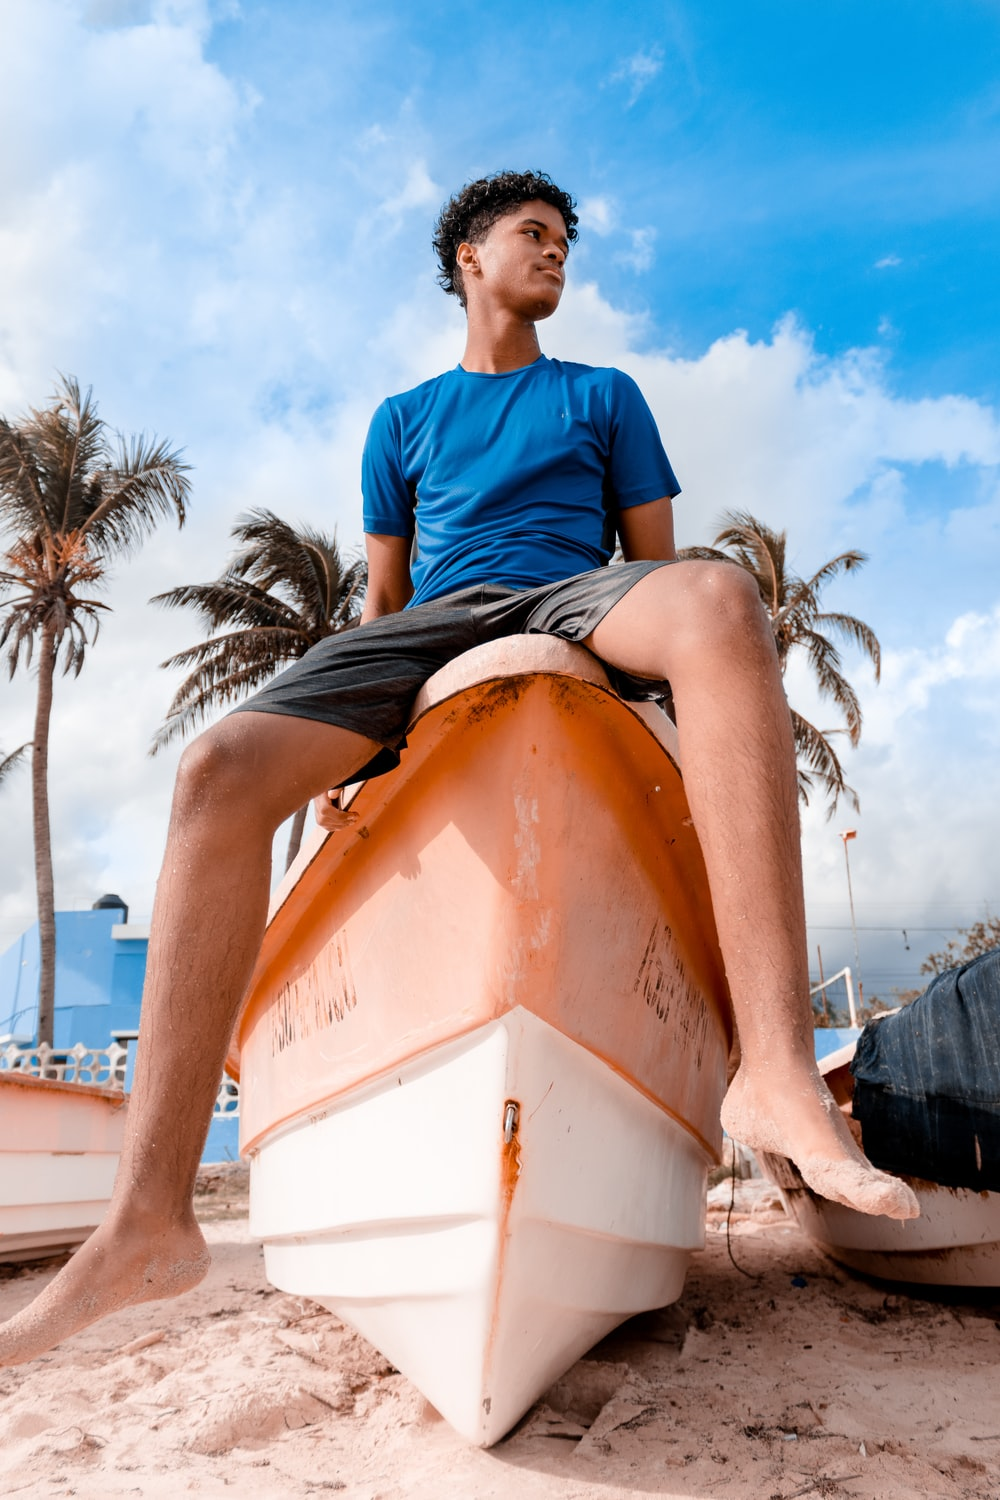 man in blue crew neck t-shirt sitting on orange and white boat during daytime